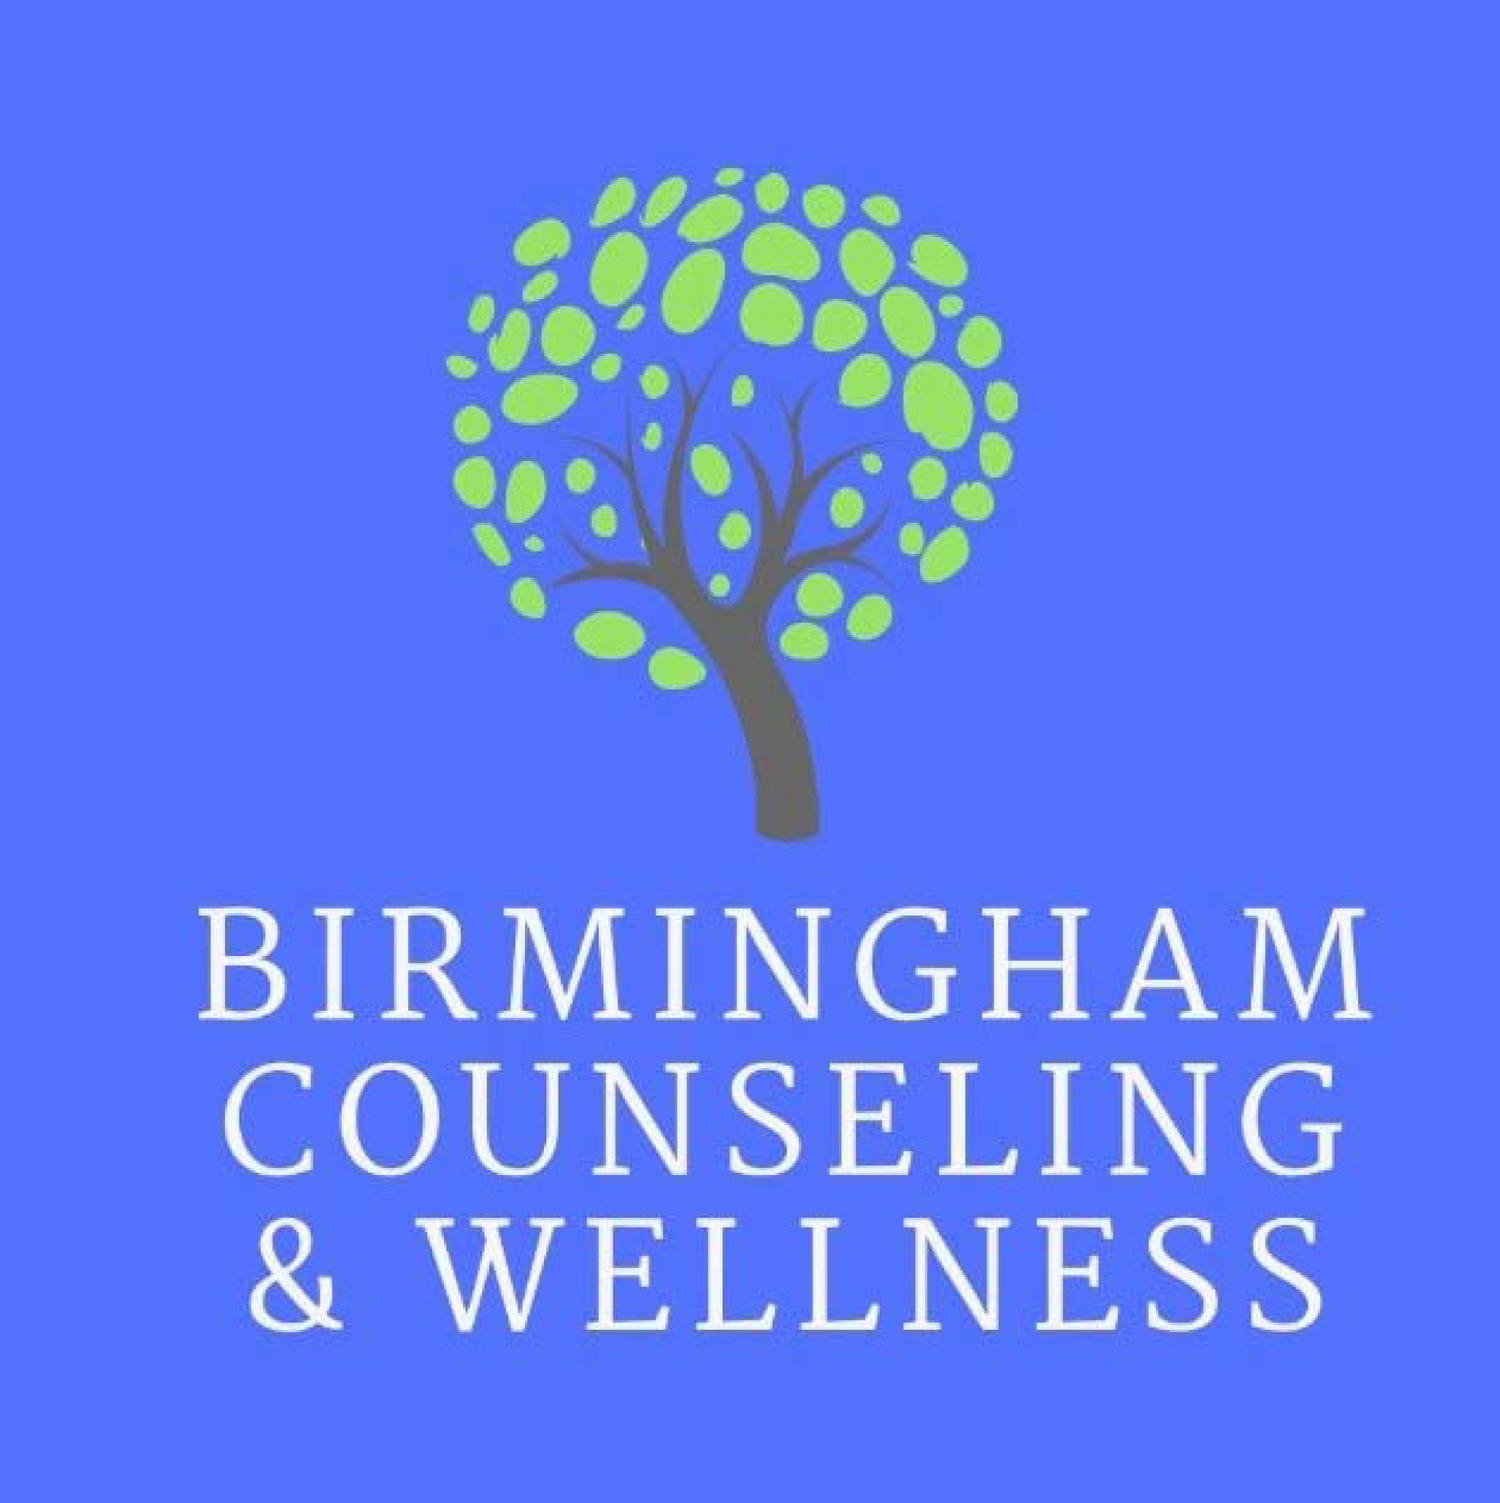 Birmingham Counseling and Wellness